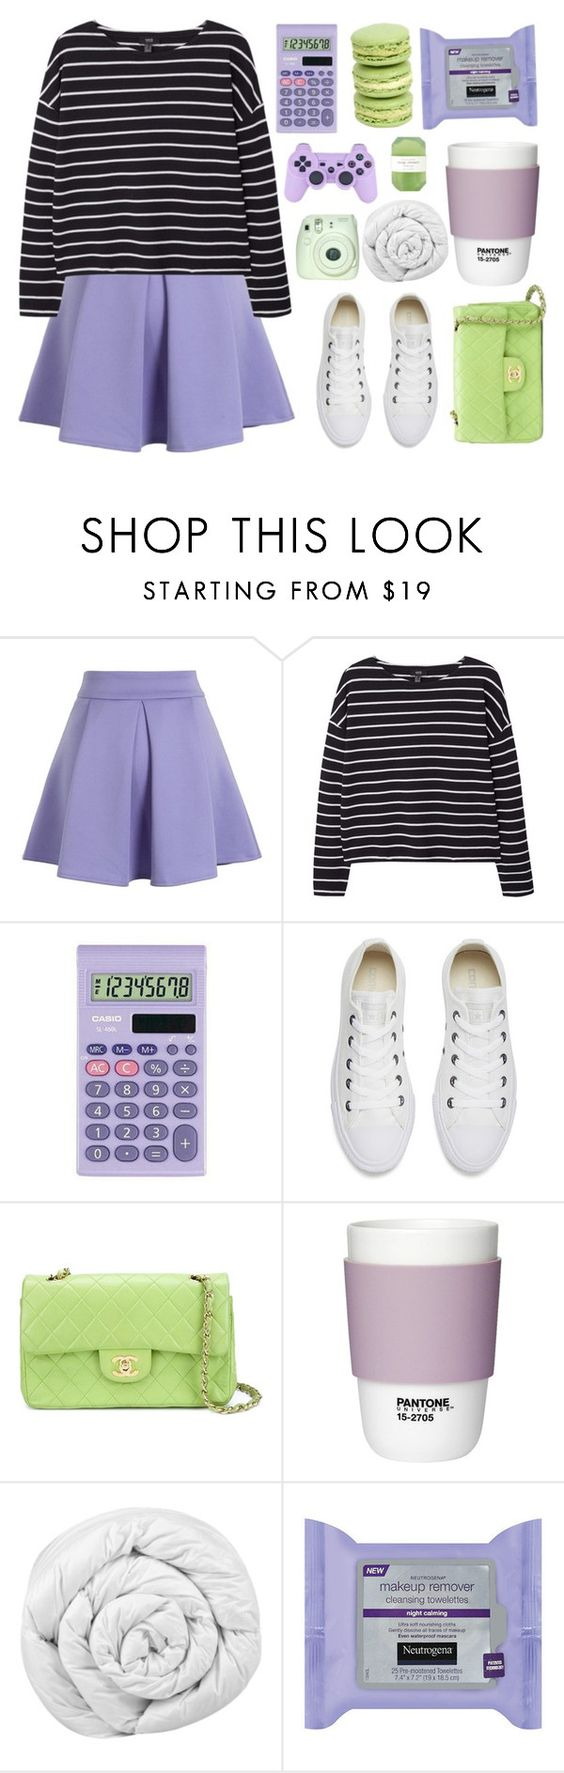 """~remember me for centuries"" by spellbooks-and-wands-xo ❤ liked on Polyvore featuring Chicwish, MANGO, Casio, Converse, Chanel, Pantone, Brinkhaus, Fuji and Pelle"